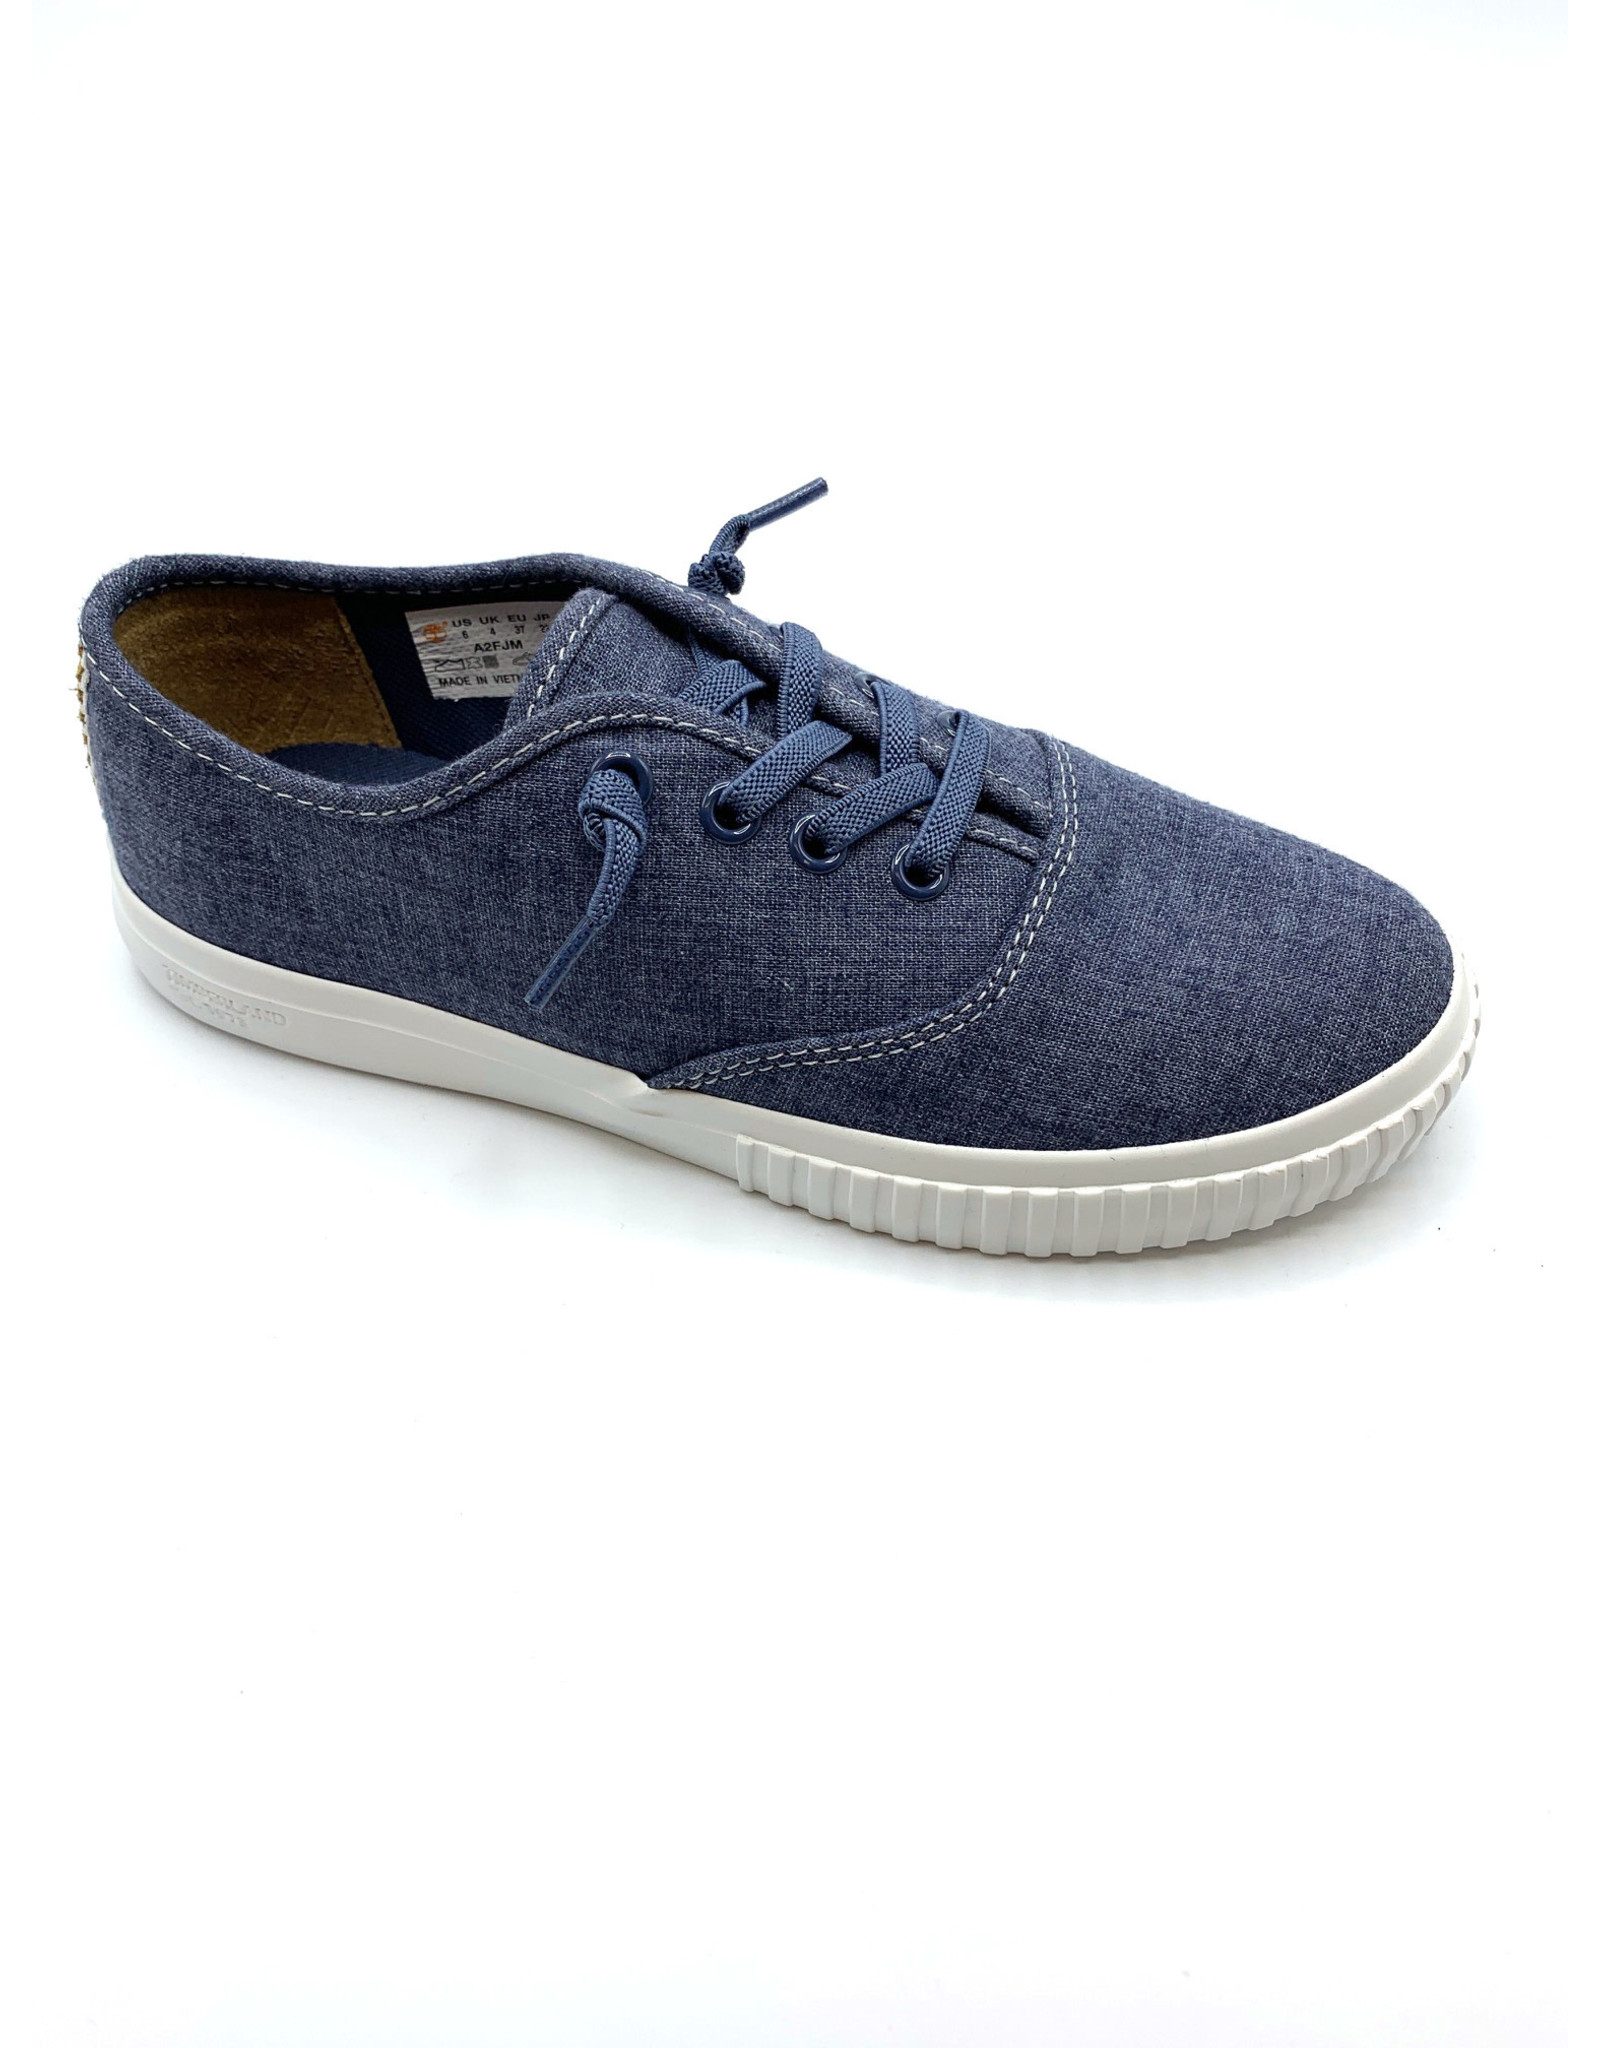 Timberland Newport Bay Canvas Oxford